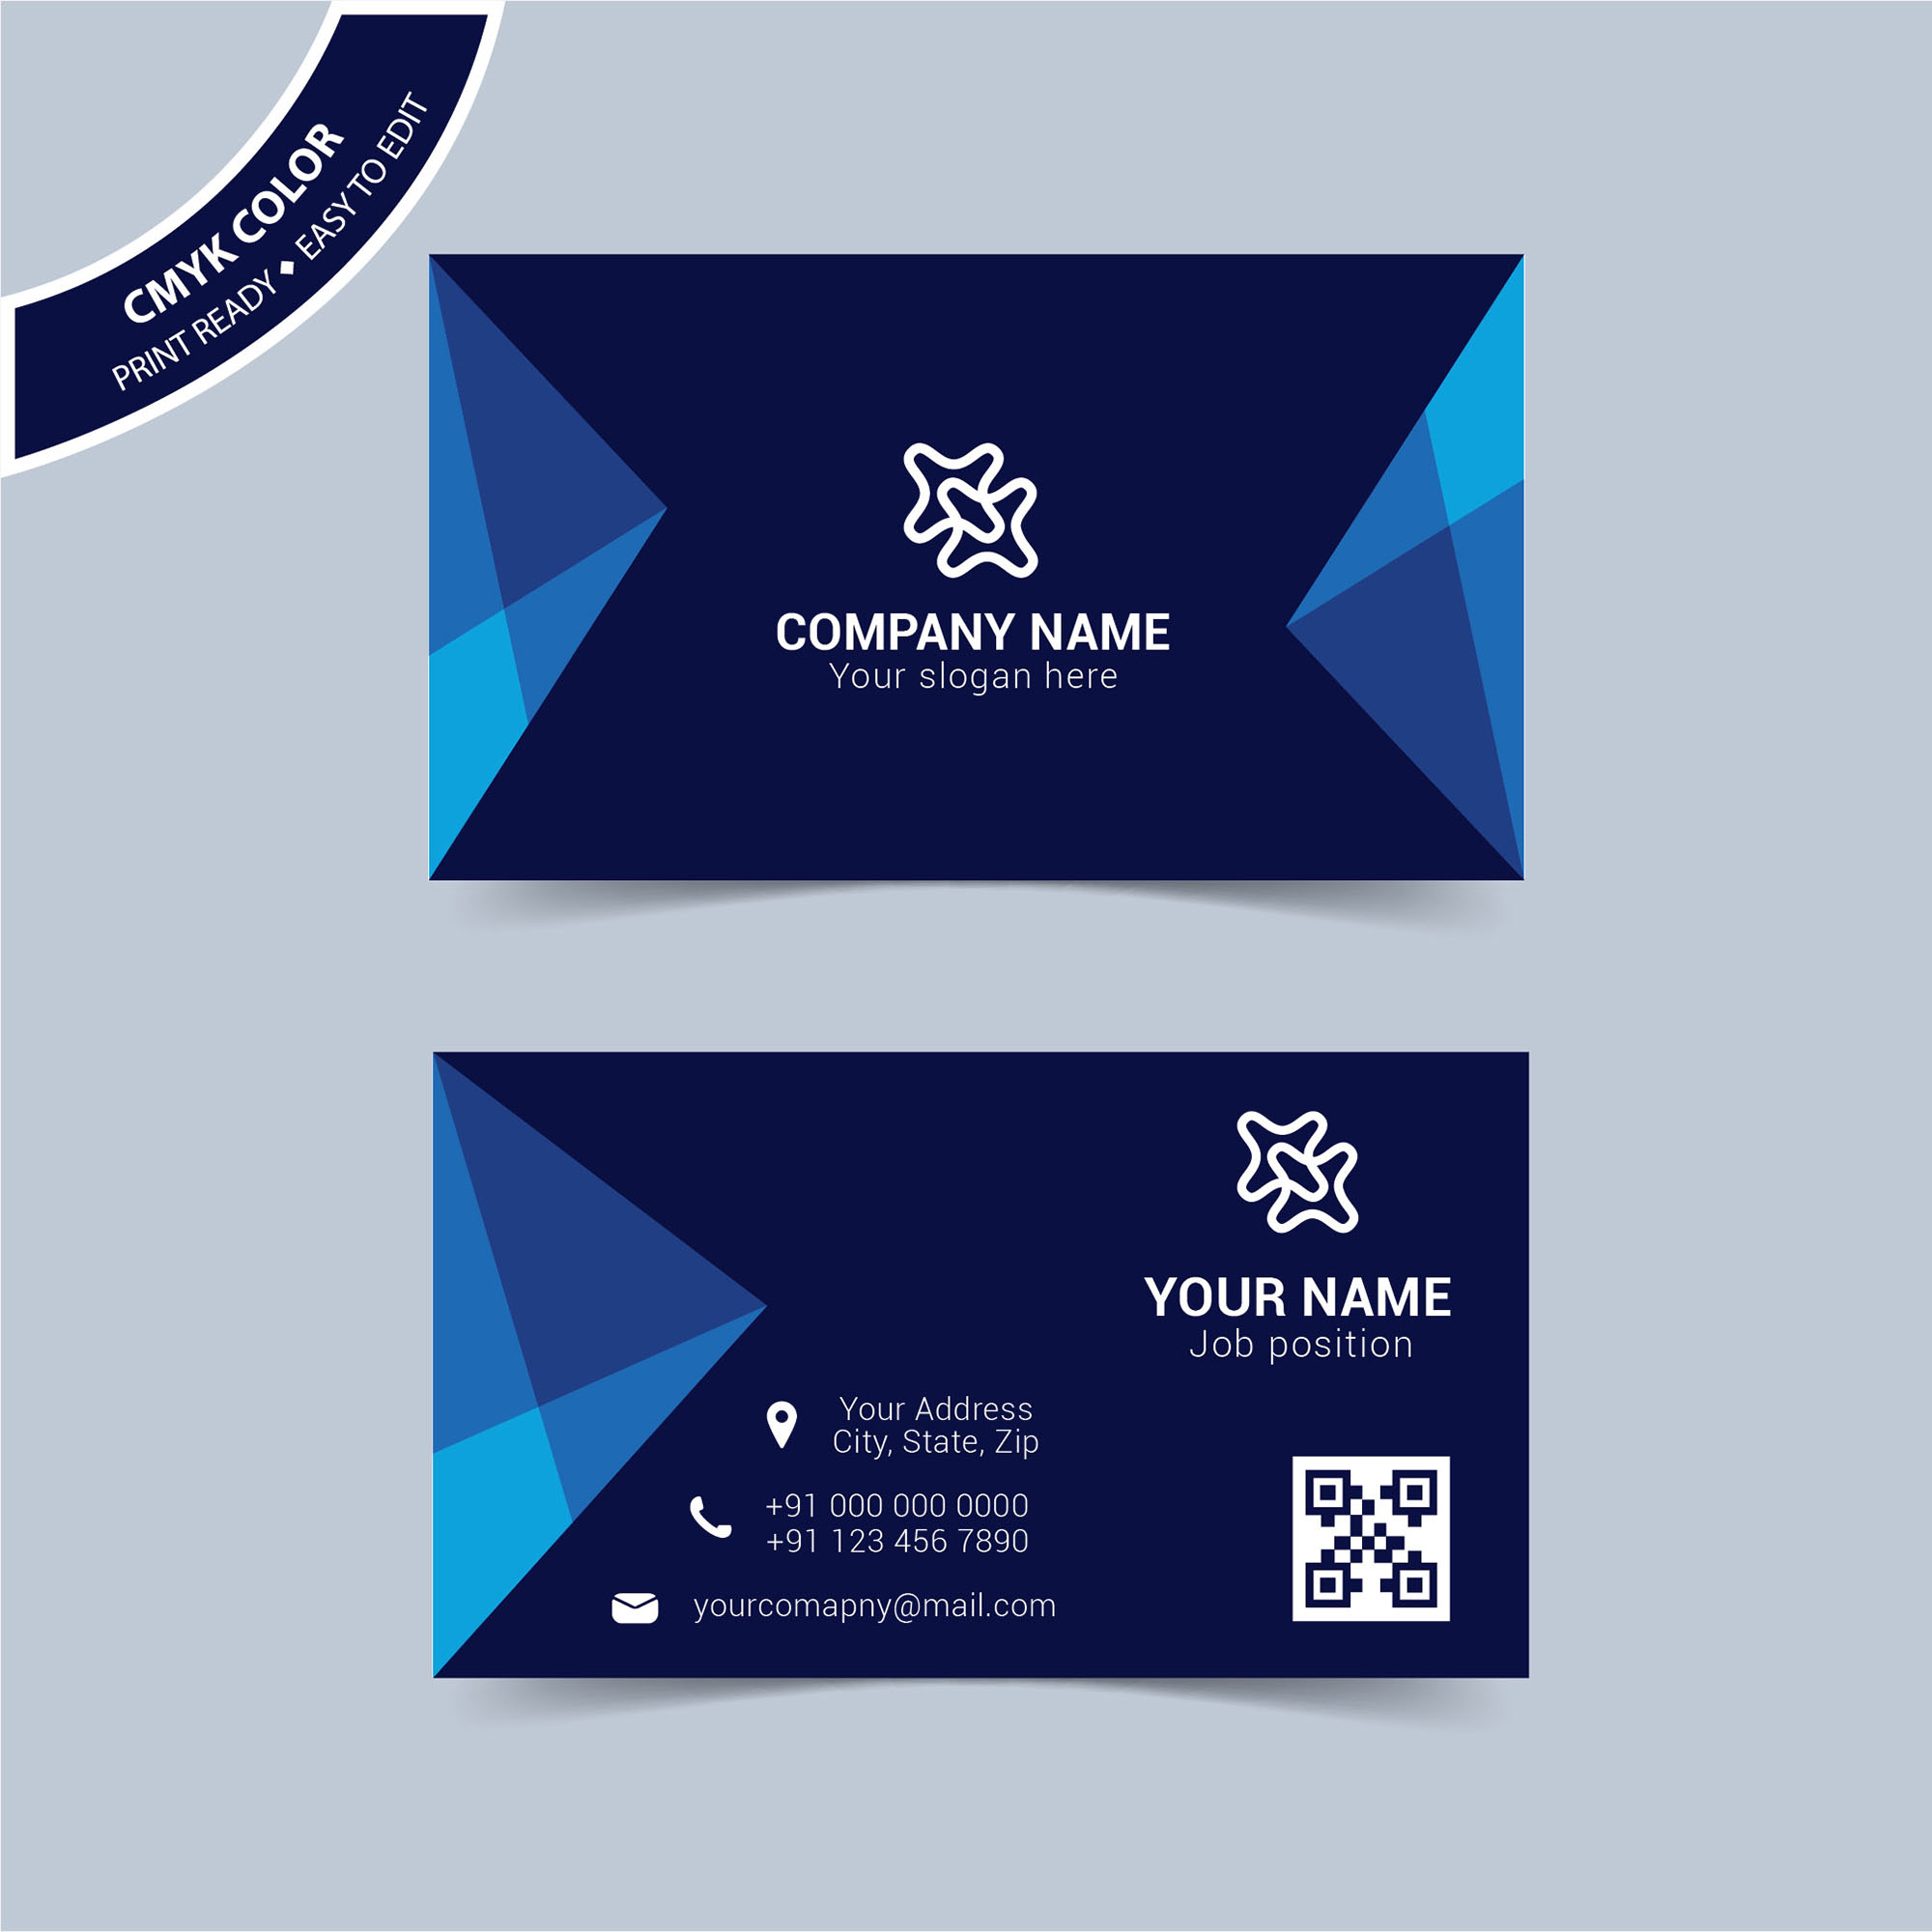 Modern blue business card template free download wisxi business card business cards business card design business card template design templates fbccfo Images